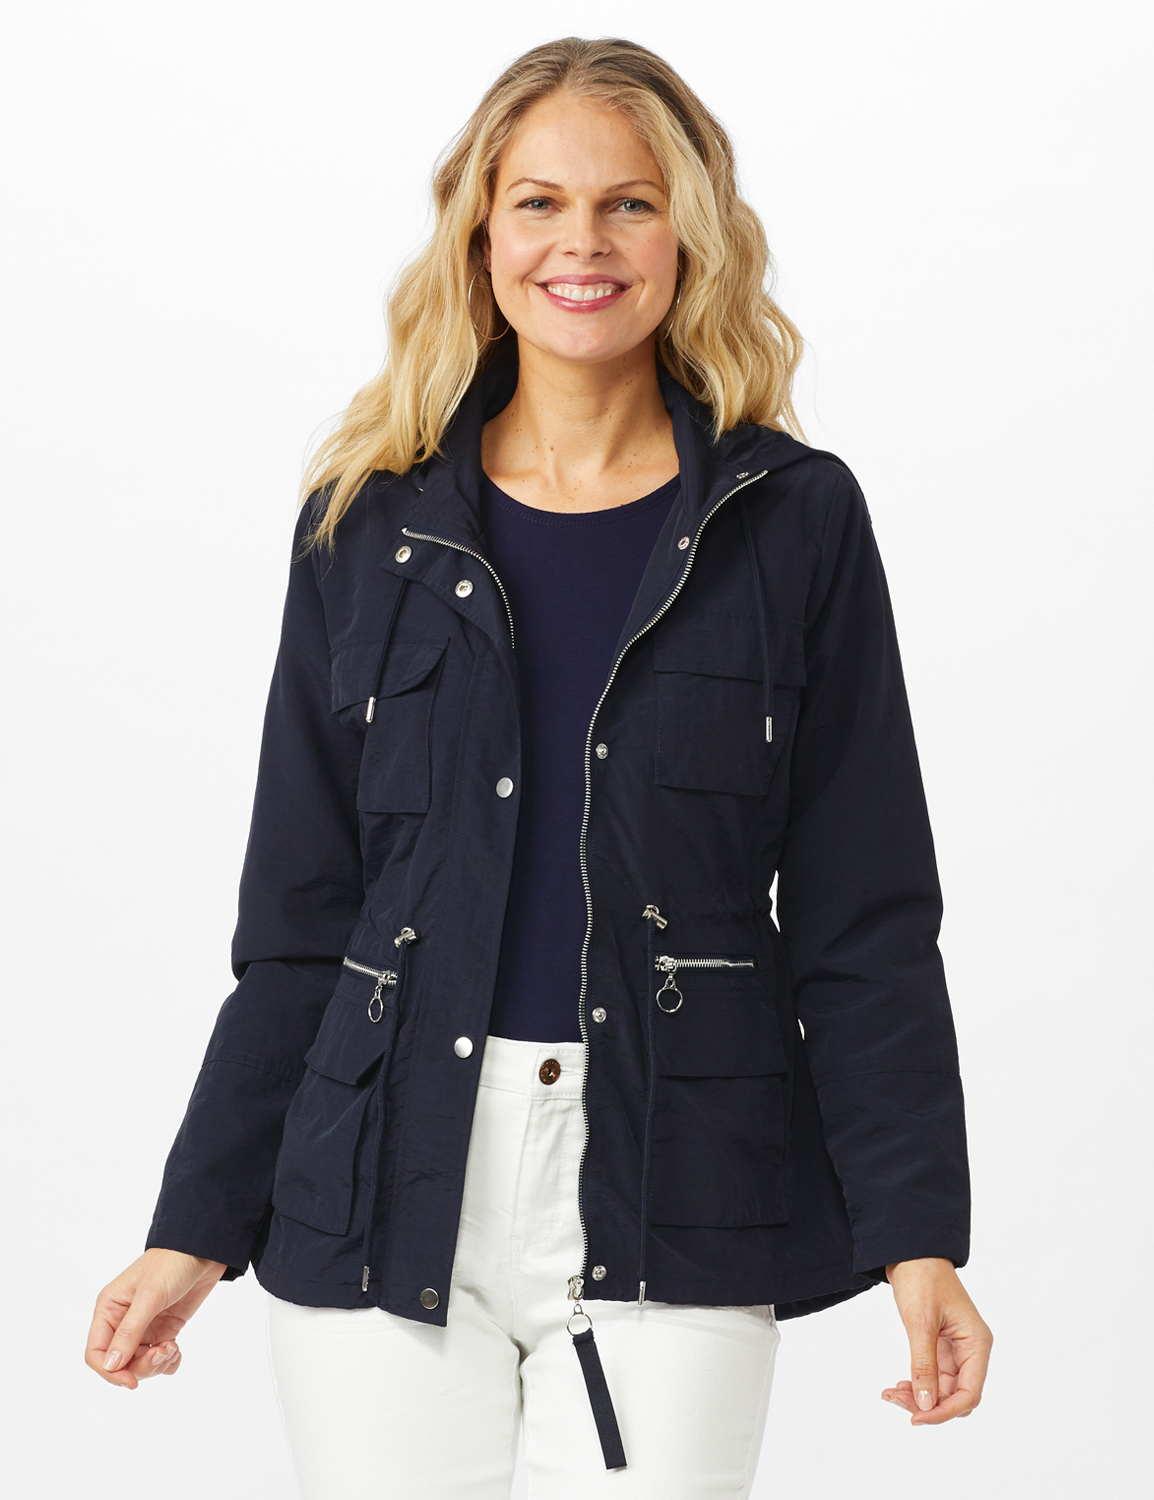 Dry Nylon Hooded Zip Front Utility Jacket with 4 Cargo Pockets and Drawcord -Navy - Front